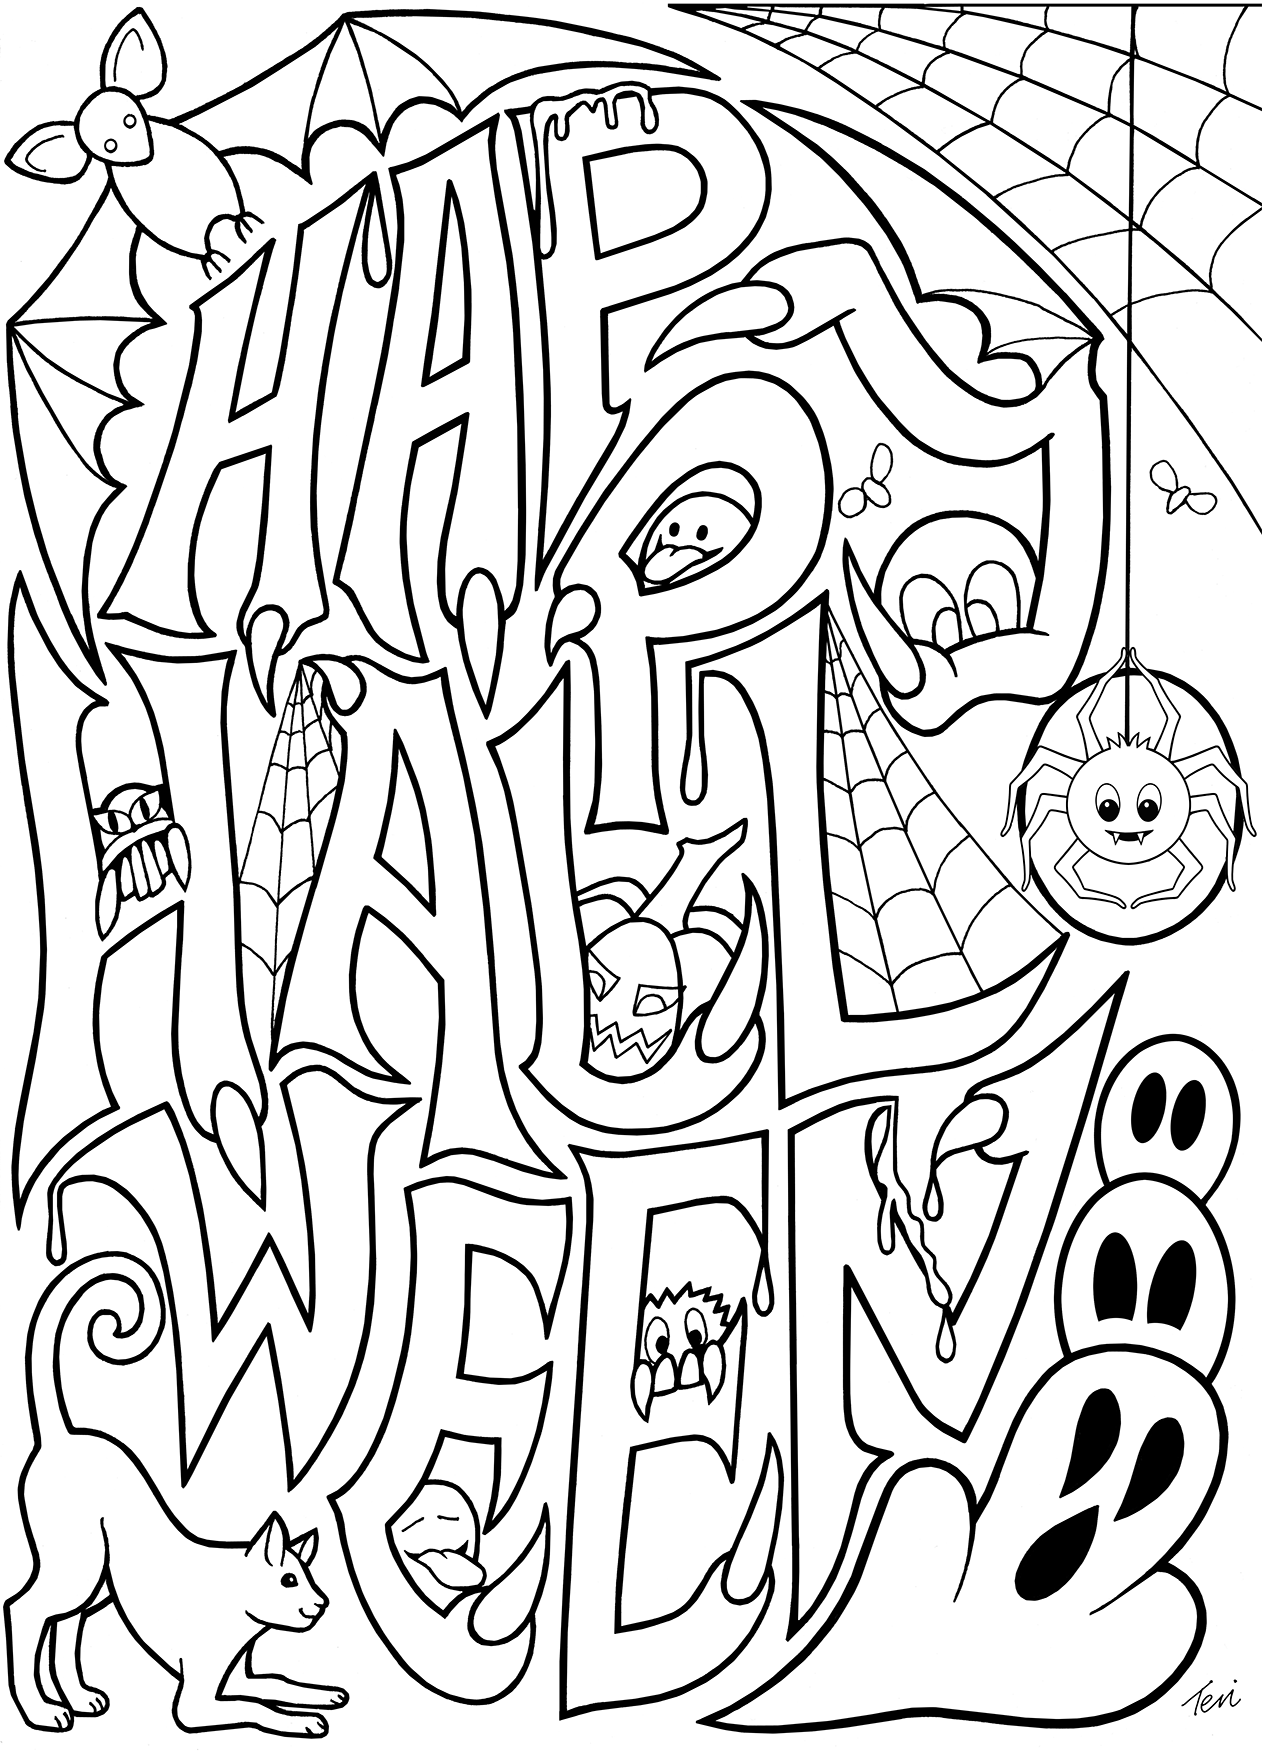 coloring halloween pages transmissionpress printable halloween coloring pages coloring pages halloween